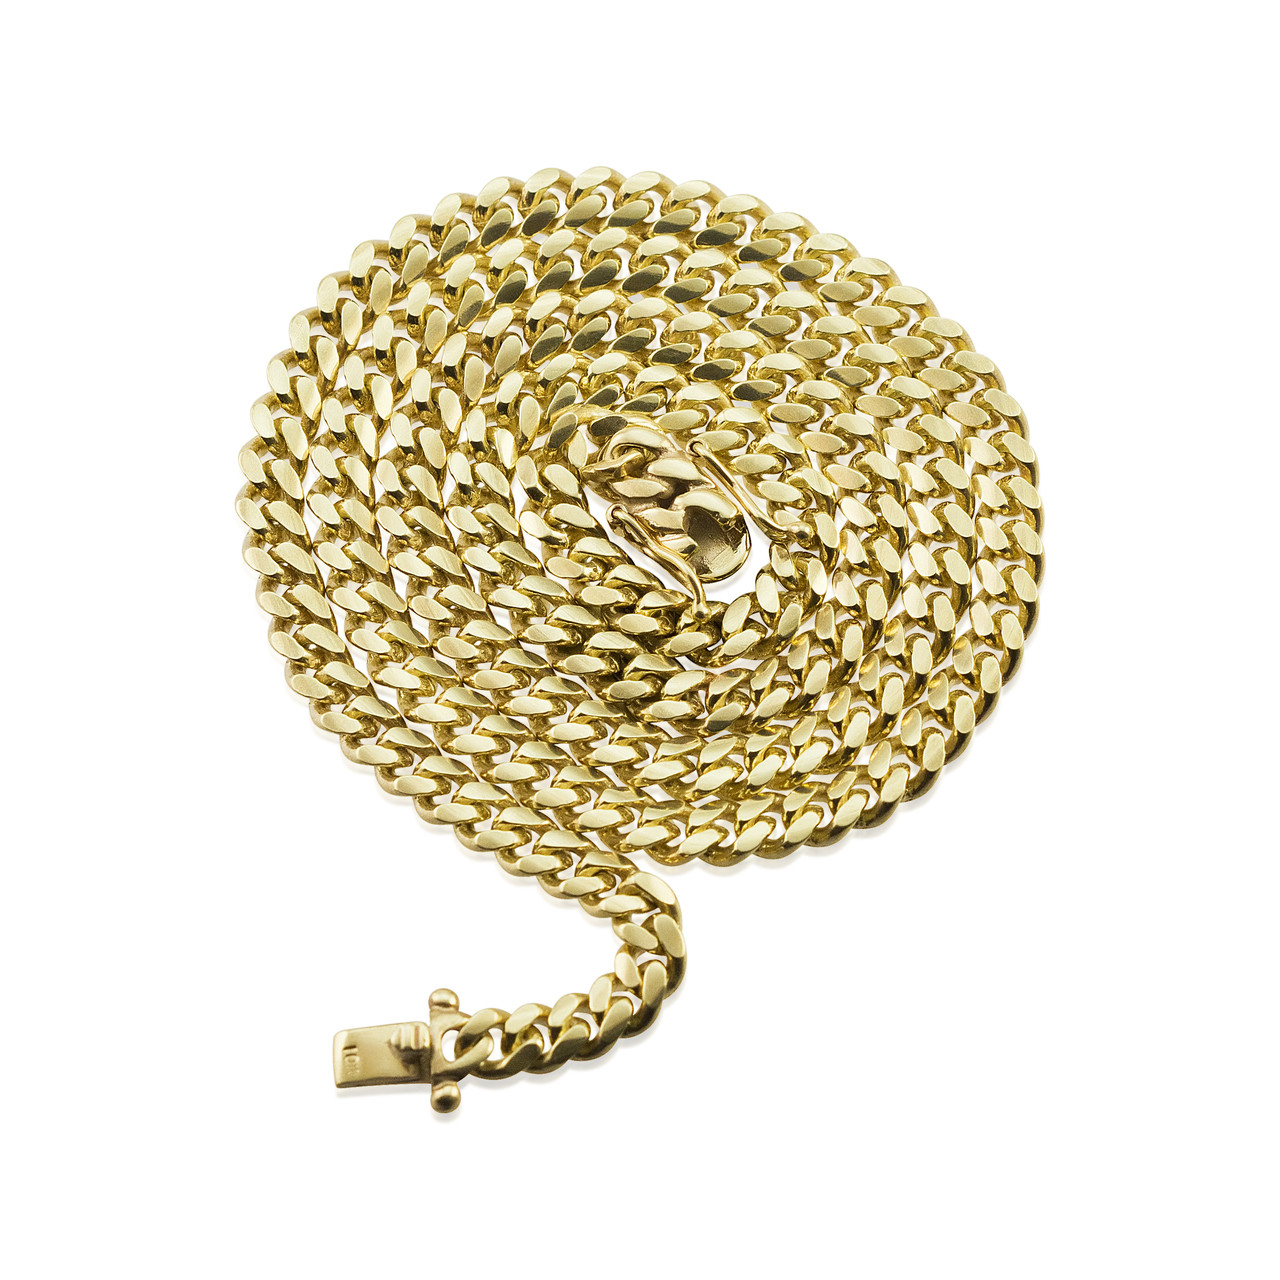 10k Gold Cuban Link Chain >> 10k Yellow Gold 5mm Miami Cuban Link Chain 26in